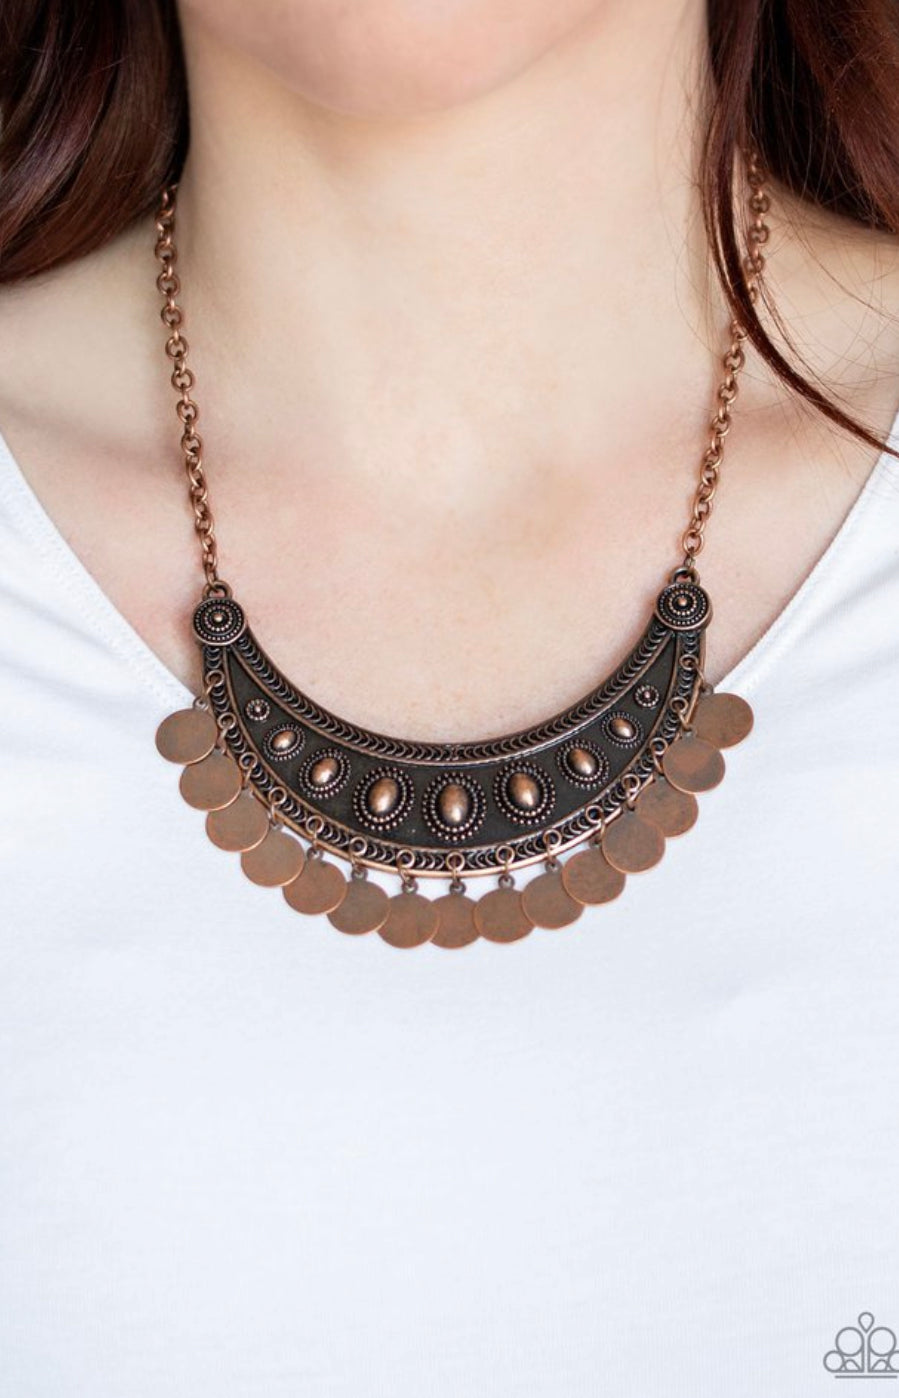 Paparazzi CHIMEs UP - Copper Necklace